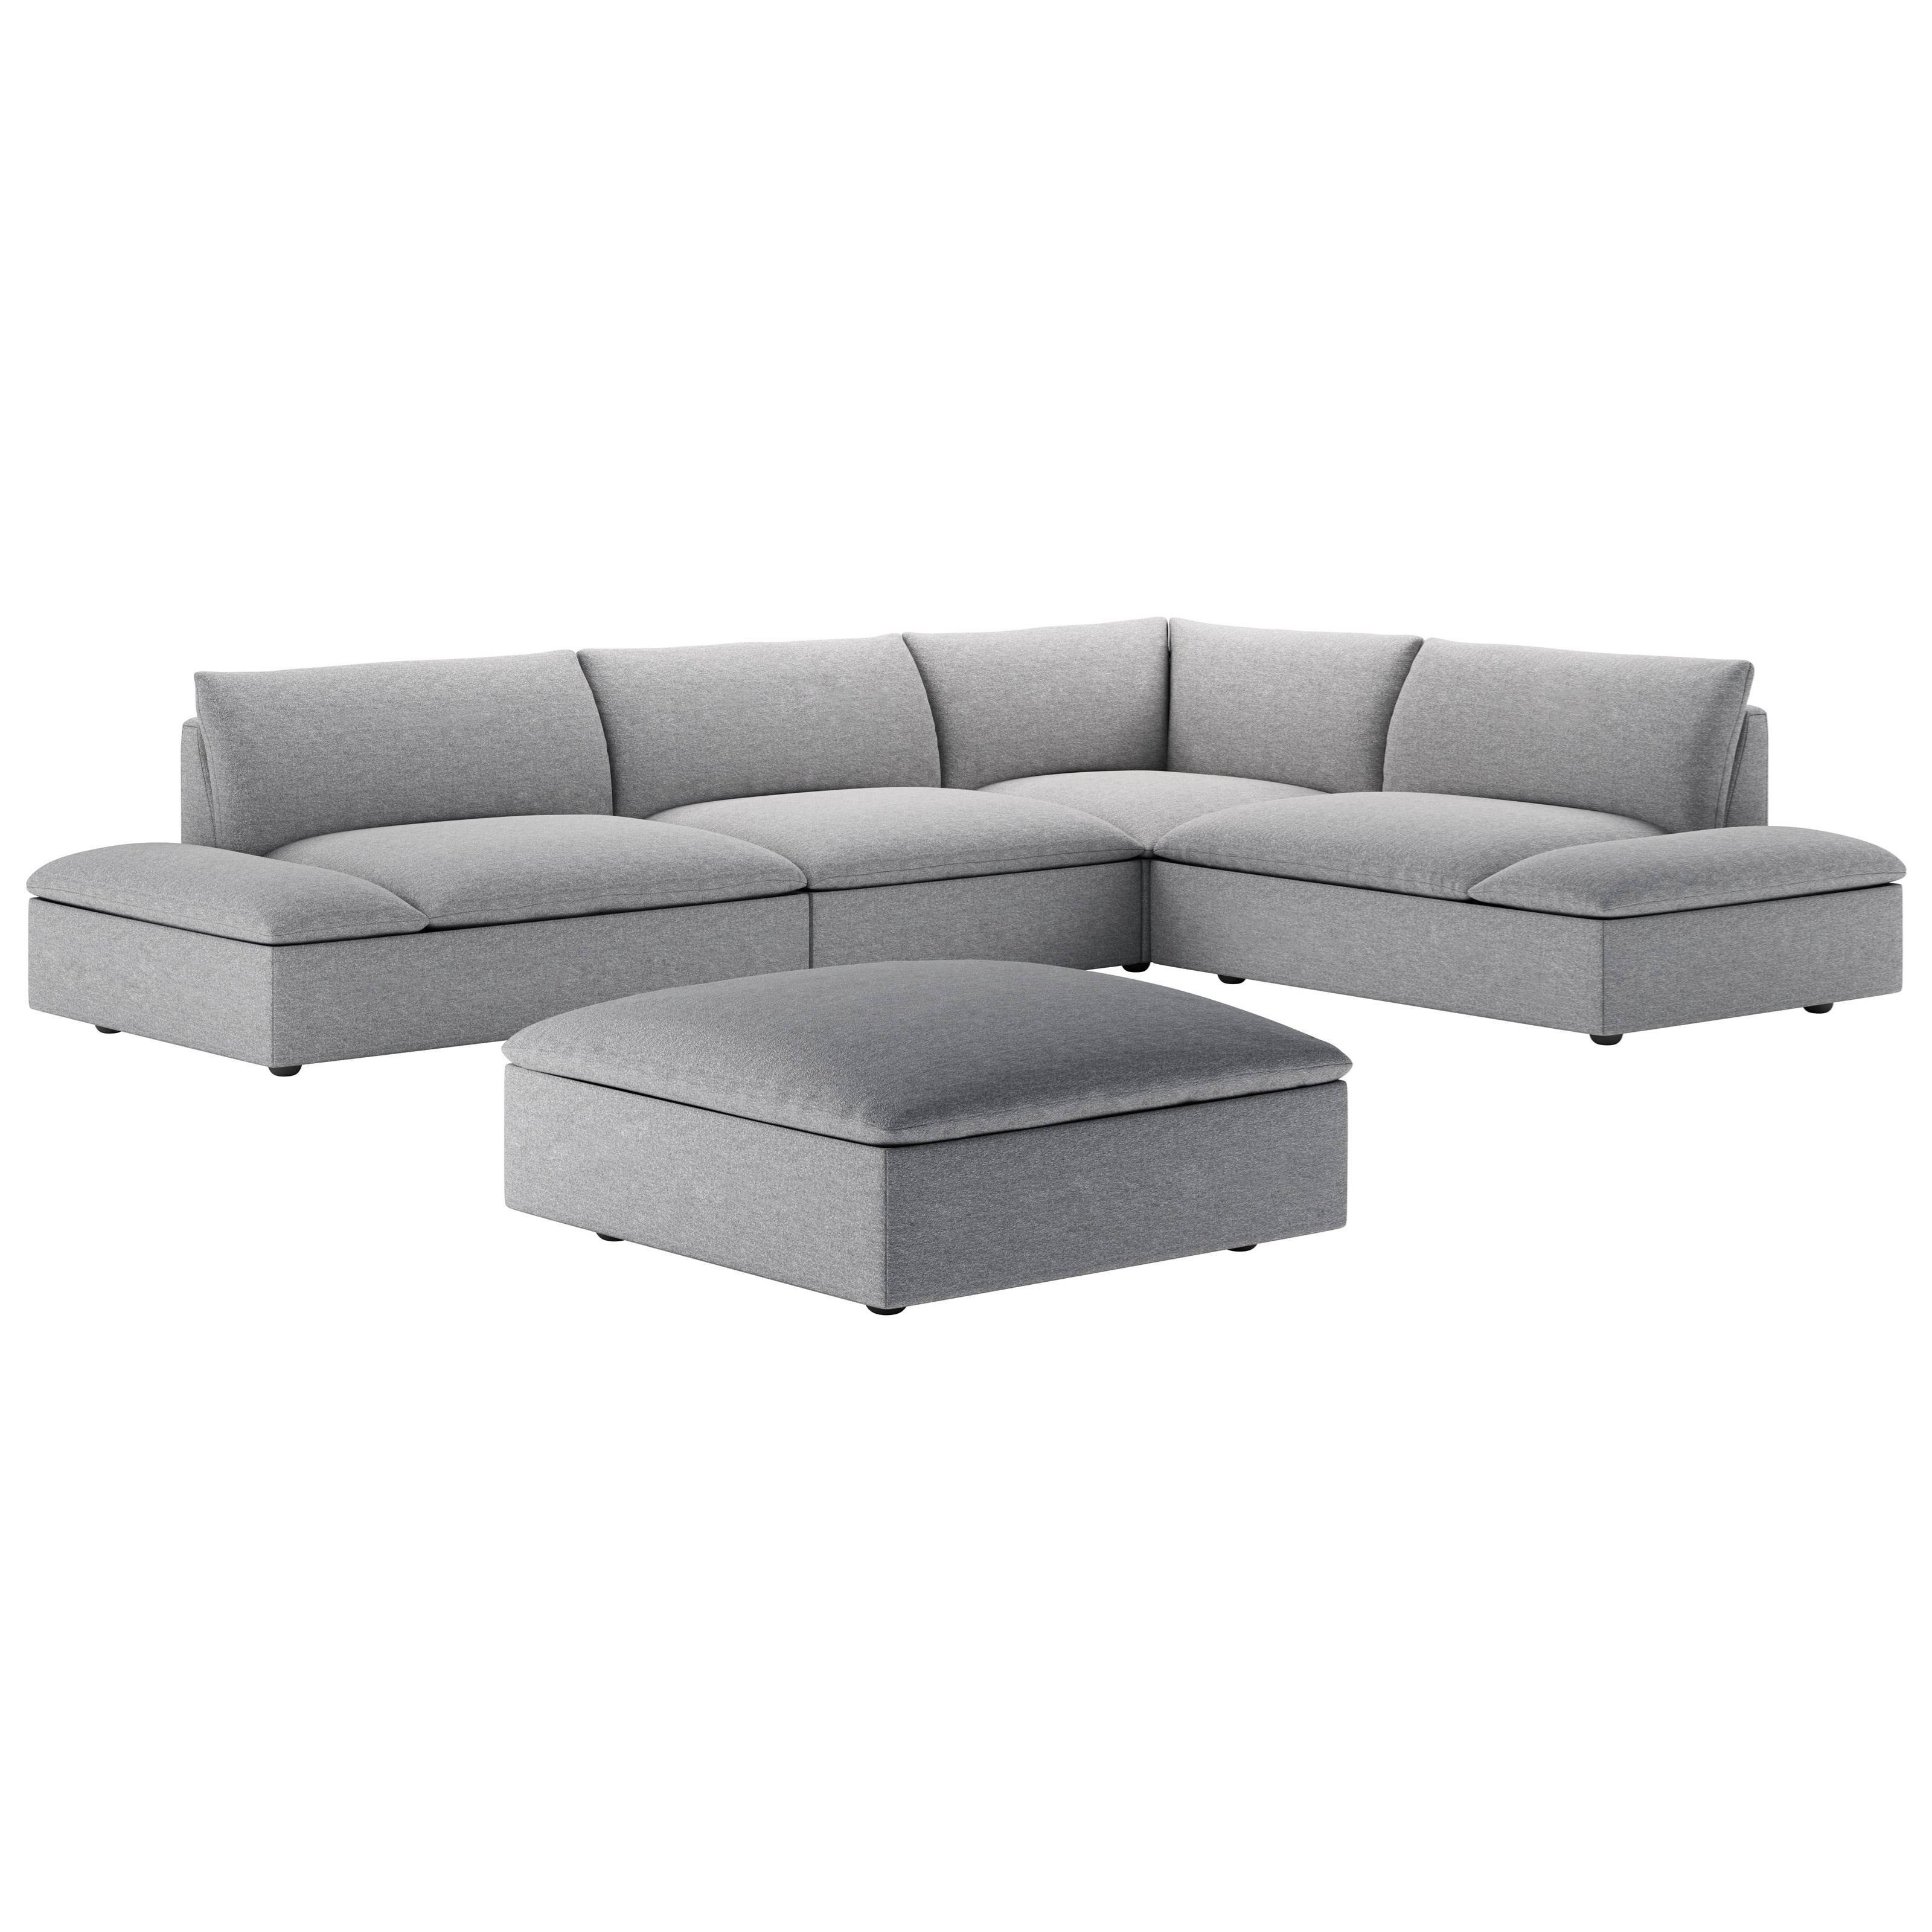 Versa 4-Piece Grand Sectional by American Leather at Williams & Kay